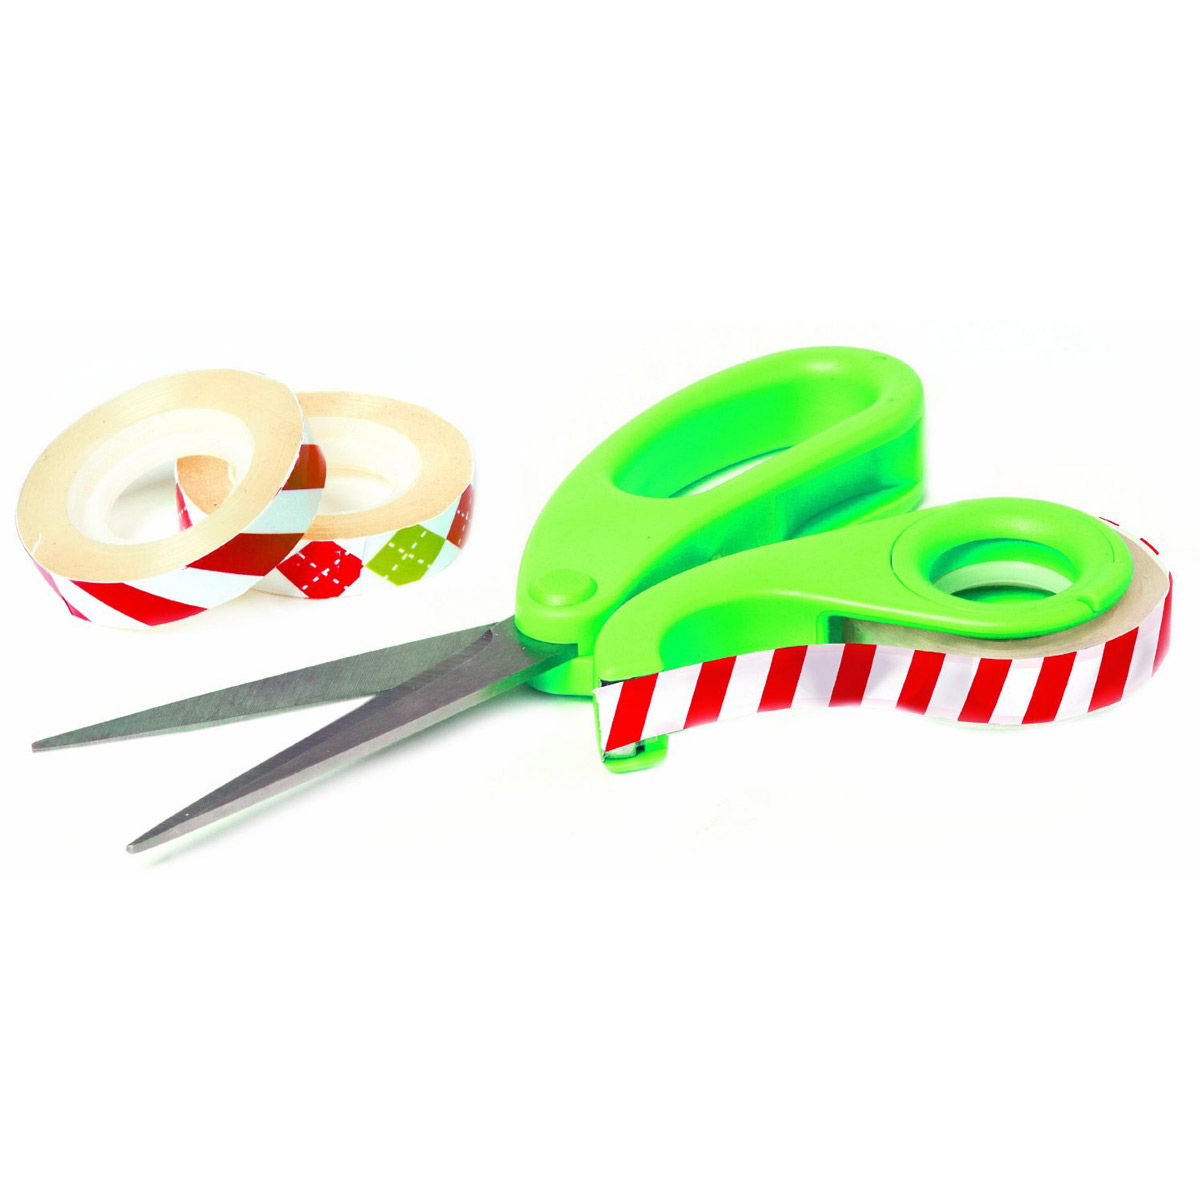 Holiday ScissorTape - Scissors and Tape All-In-One